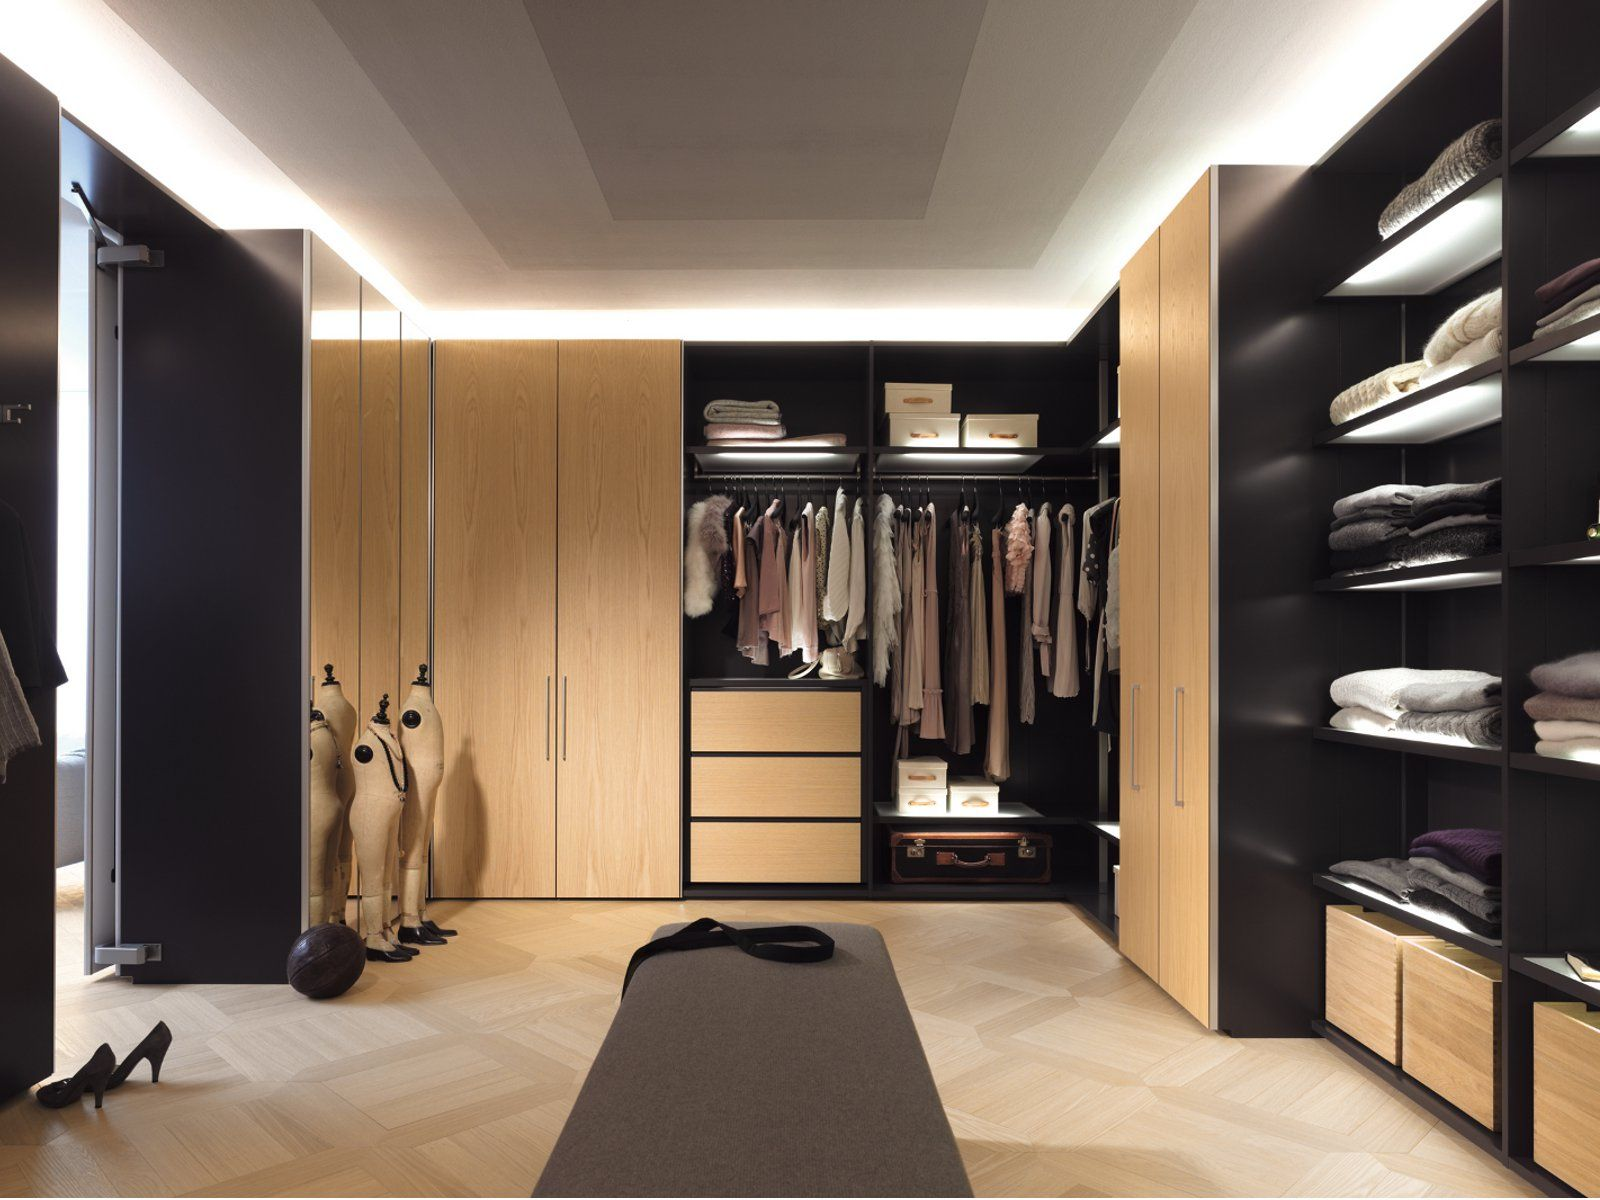 Charming Wooden L-shaped Wardrobe Closet Cabinet System With Open ...